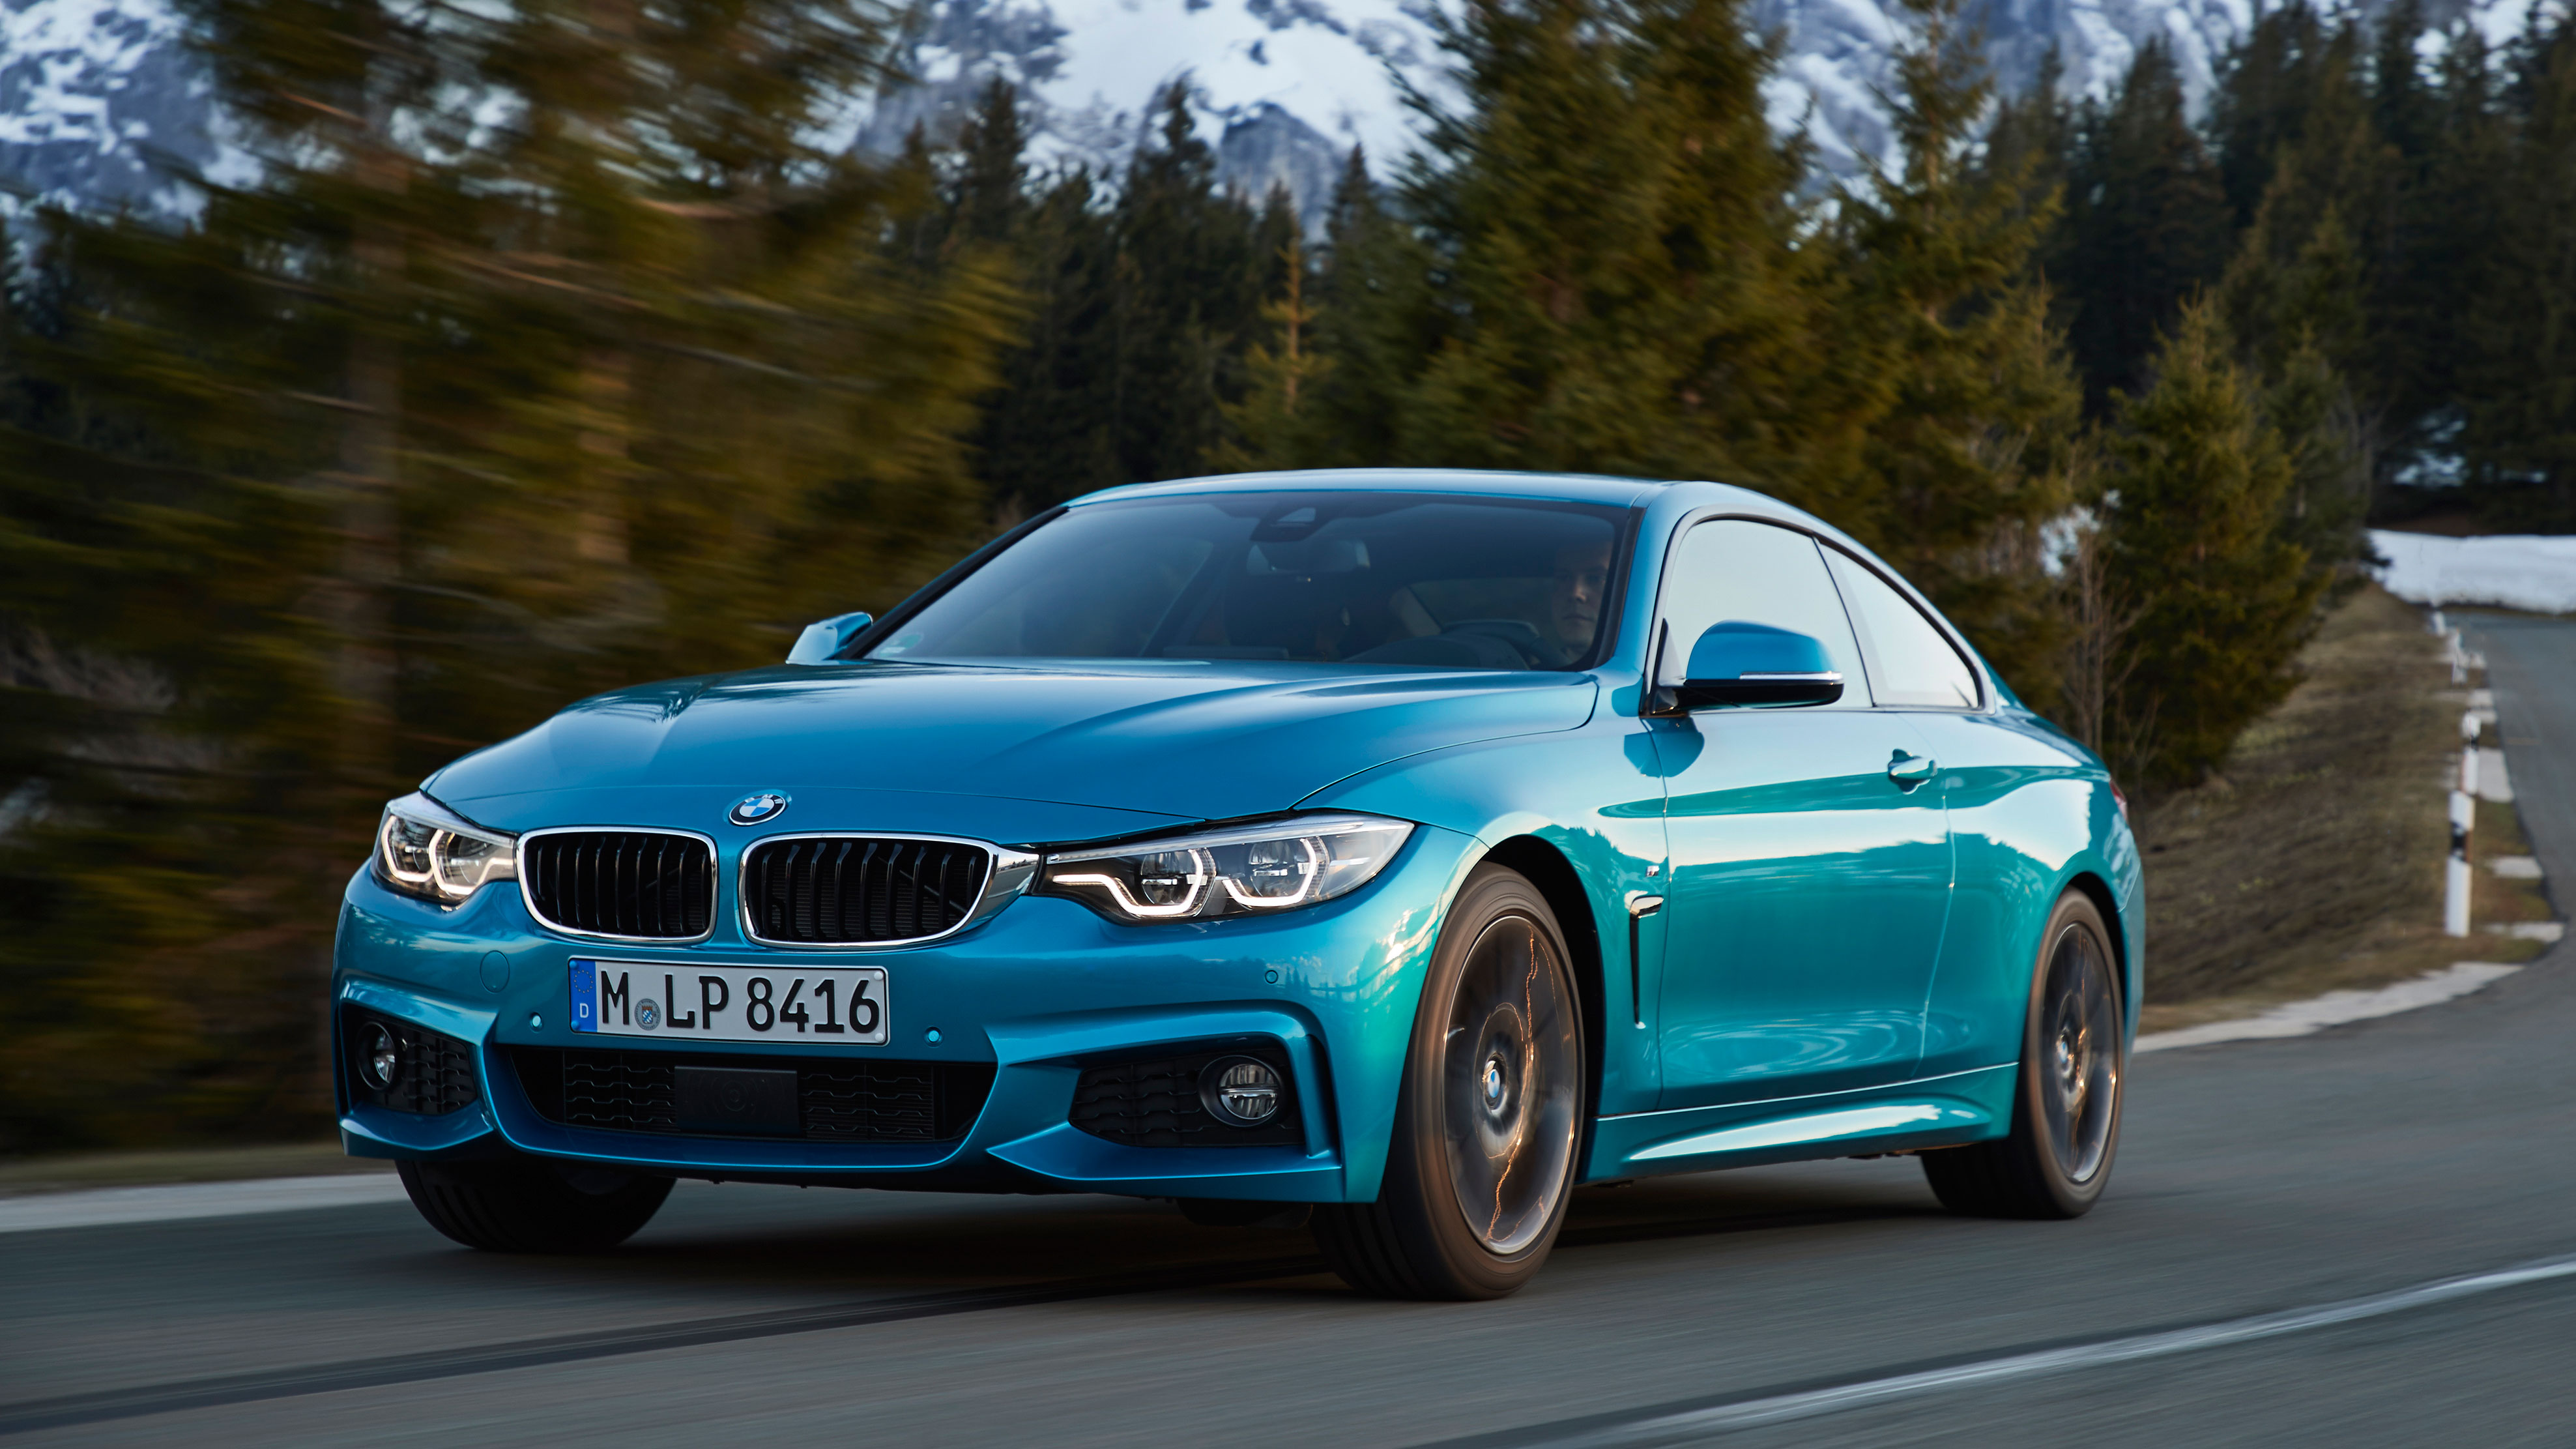 2018 bmw 4 series coupe review top gear. Black Bedroom Furniture Sets. Home Design Ideas